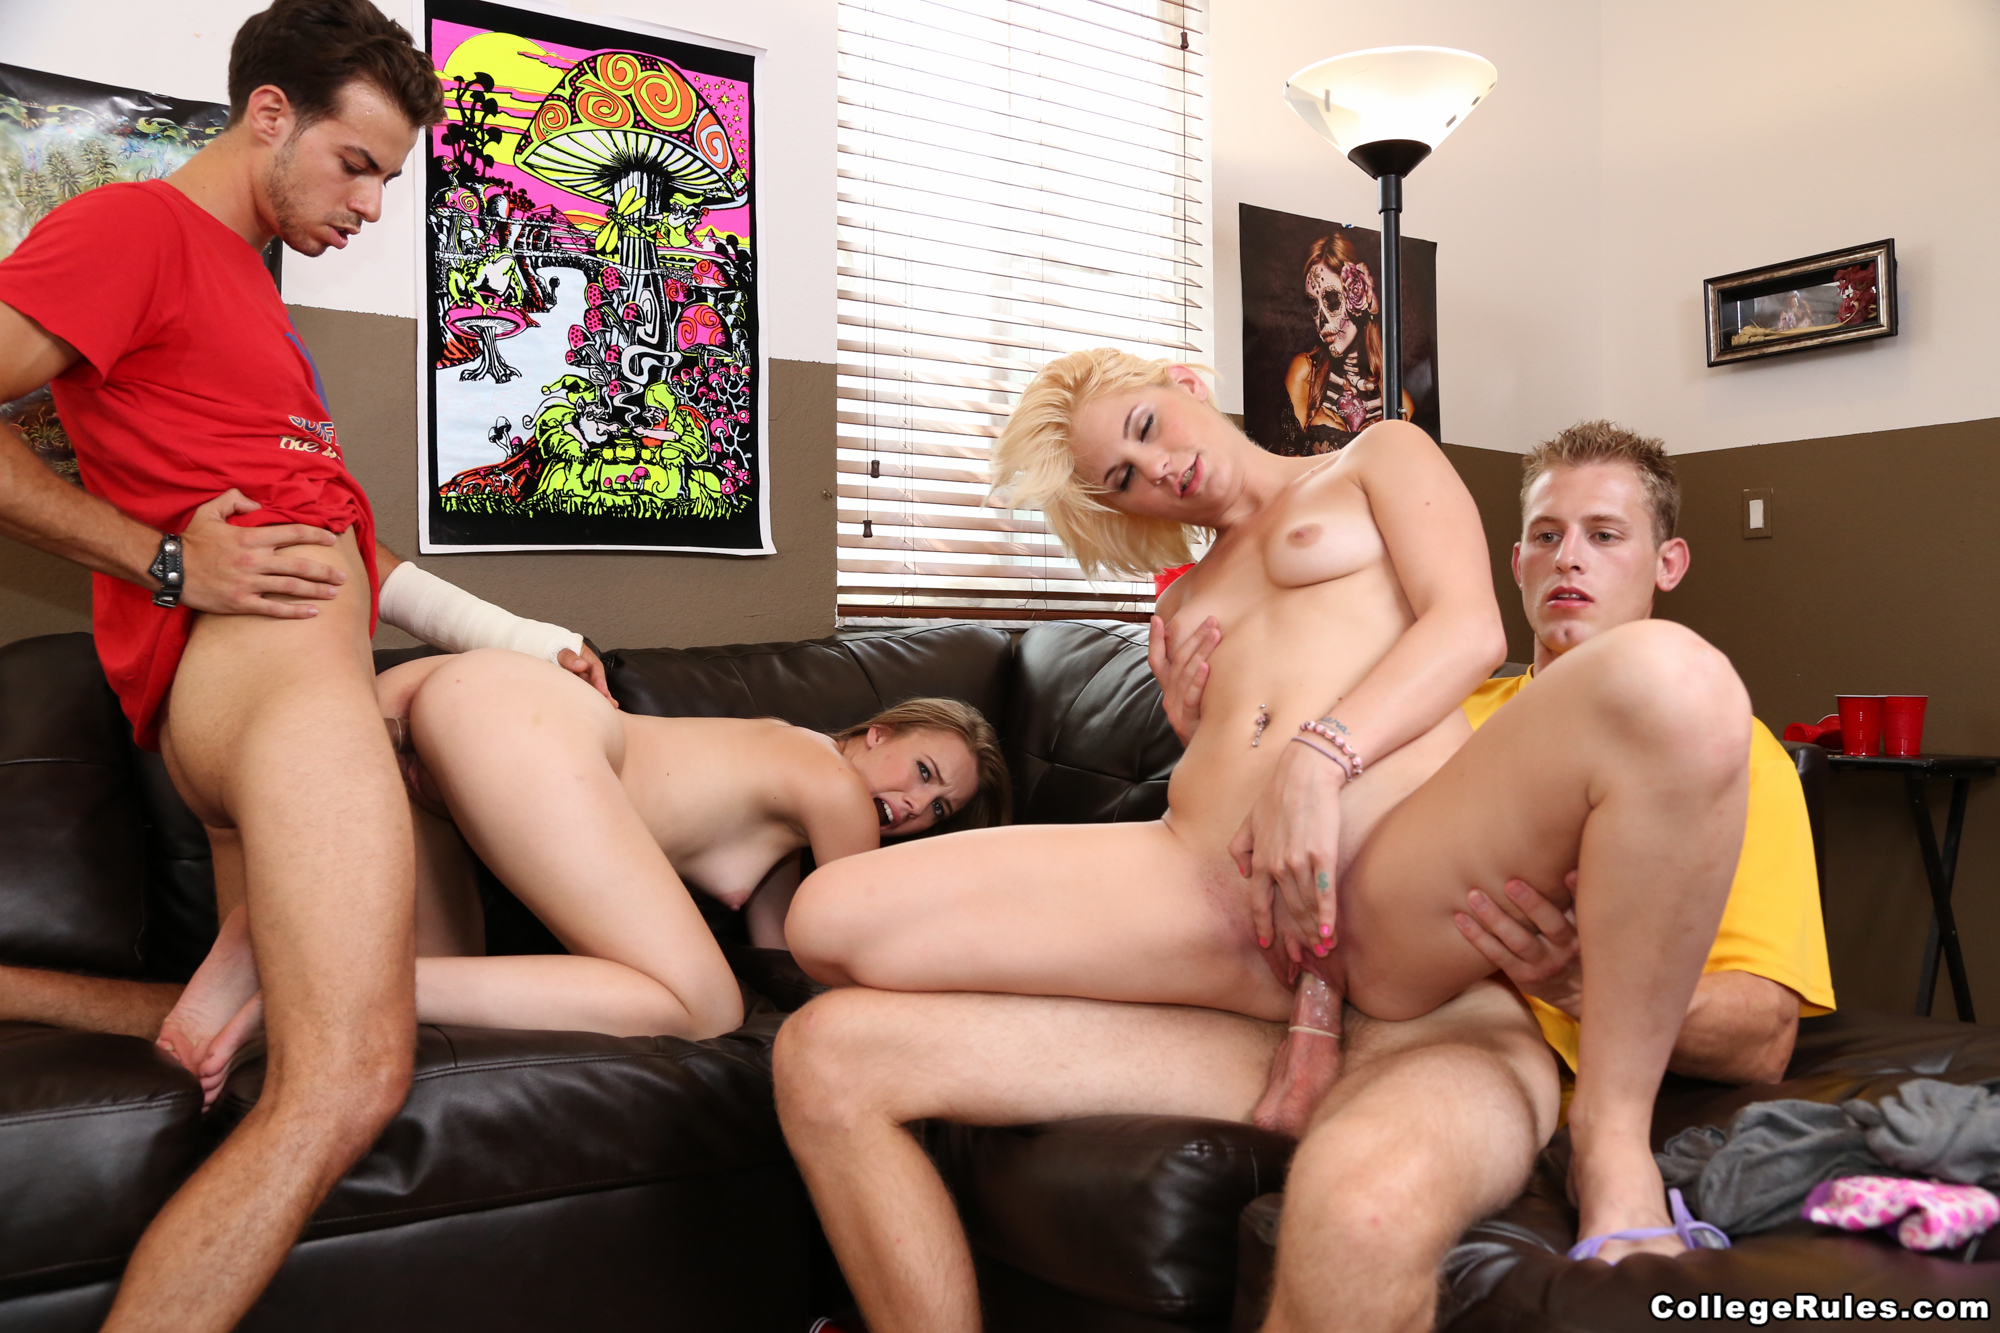 Aj applegate takes a huge black meat anally - 1 part 5